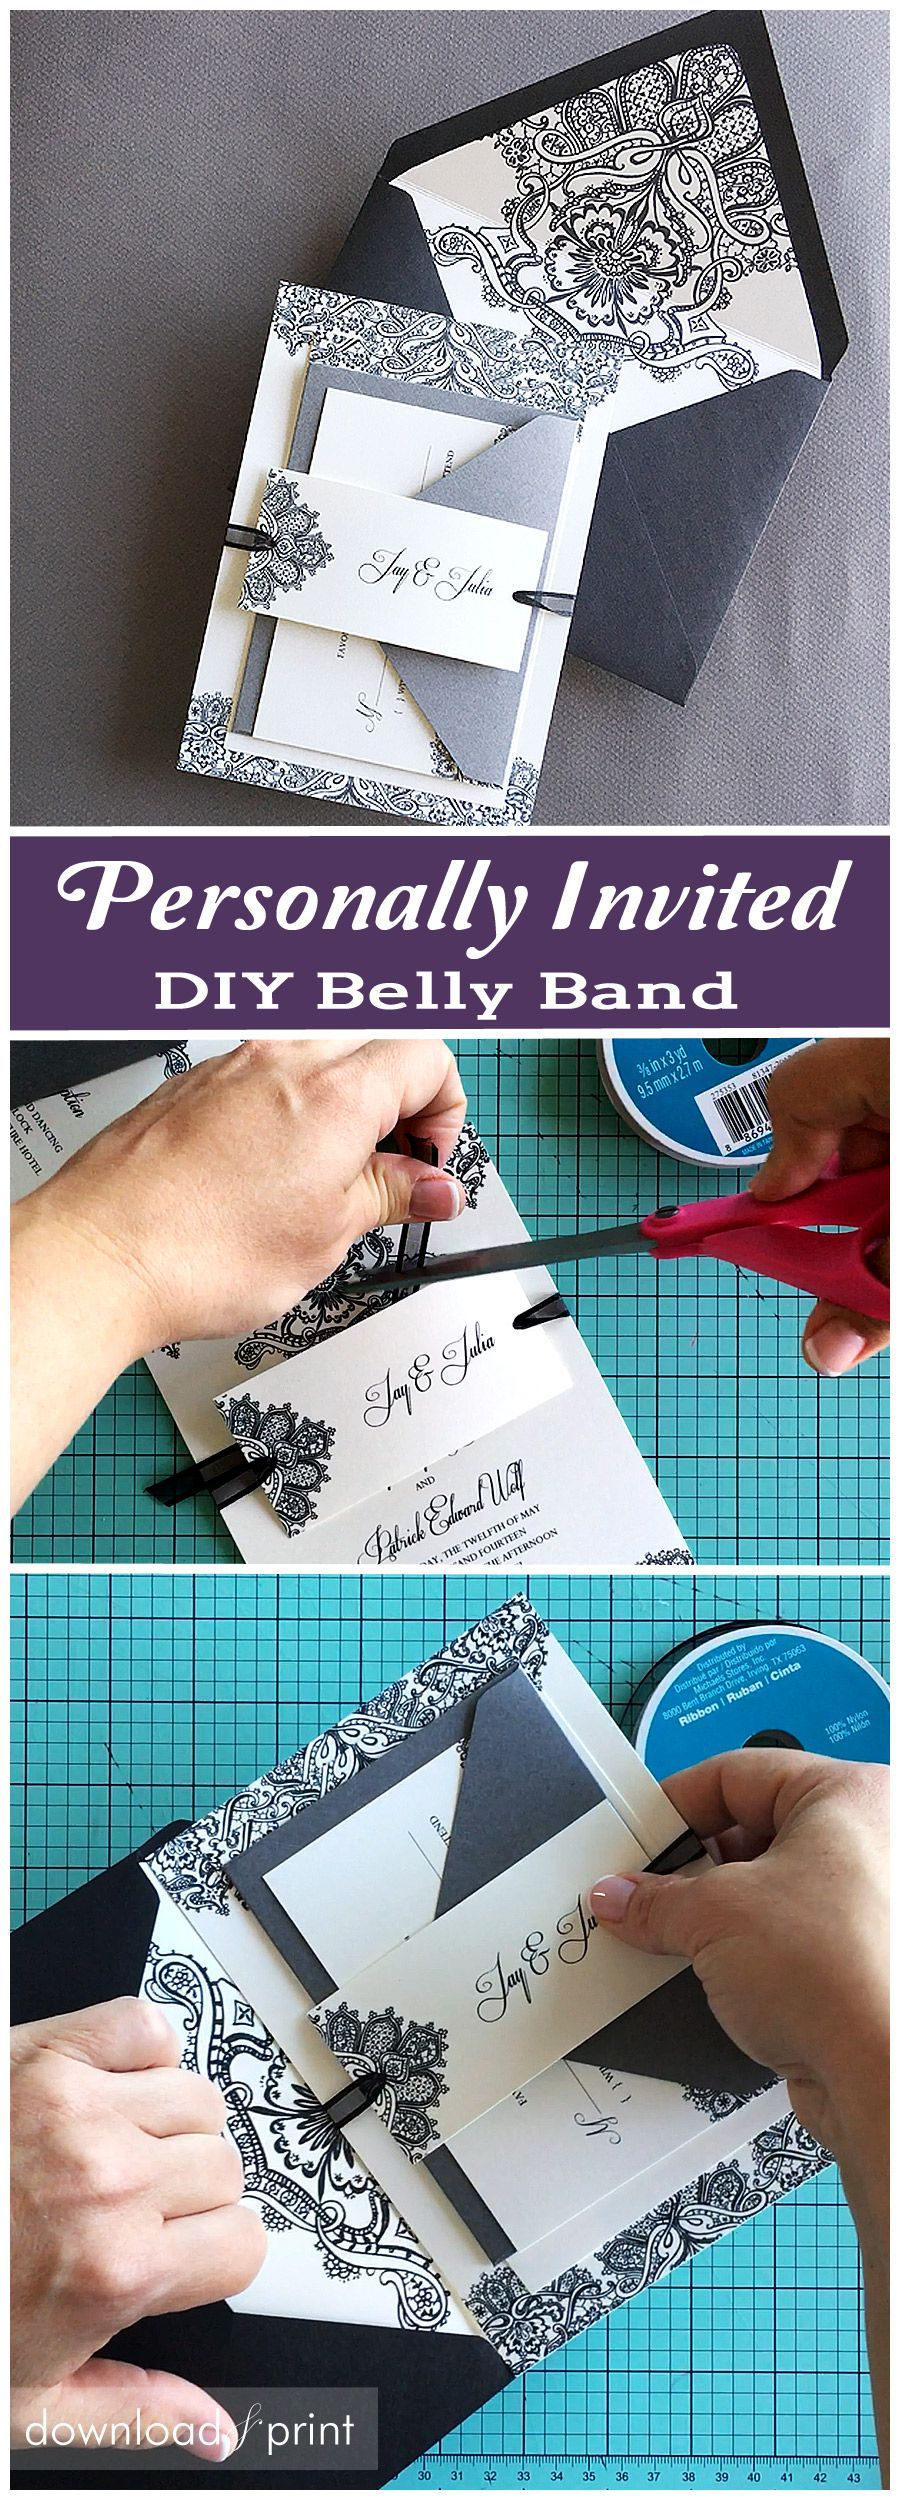 in wedding invitations is the man s name first%0A This DIY belly band has your guests u     names on  a really nice personal touch